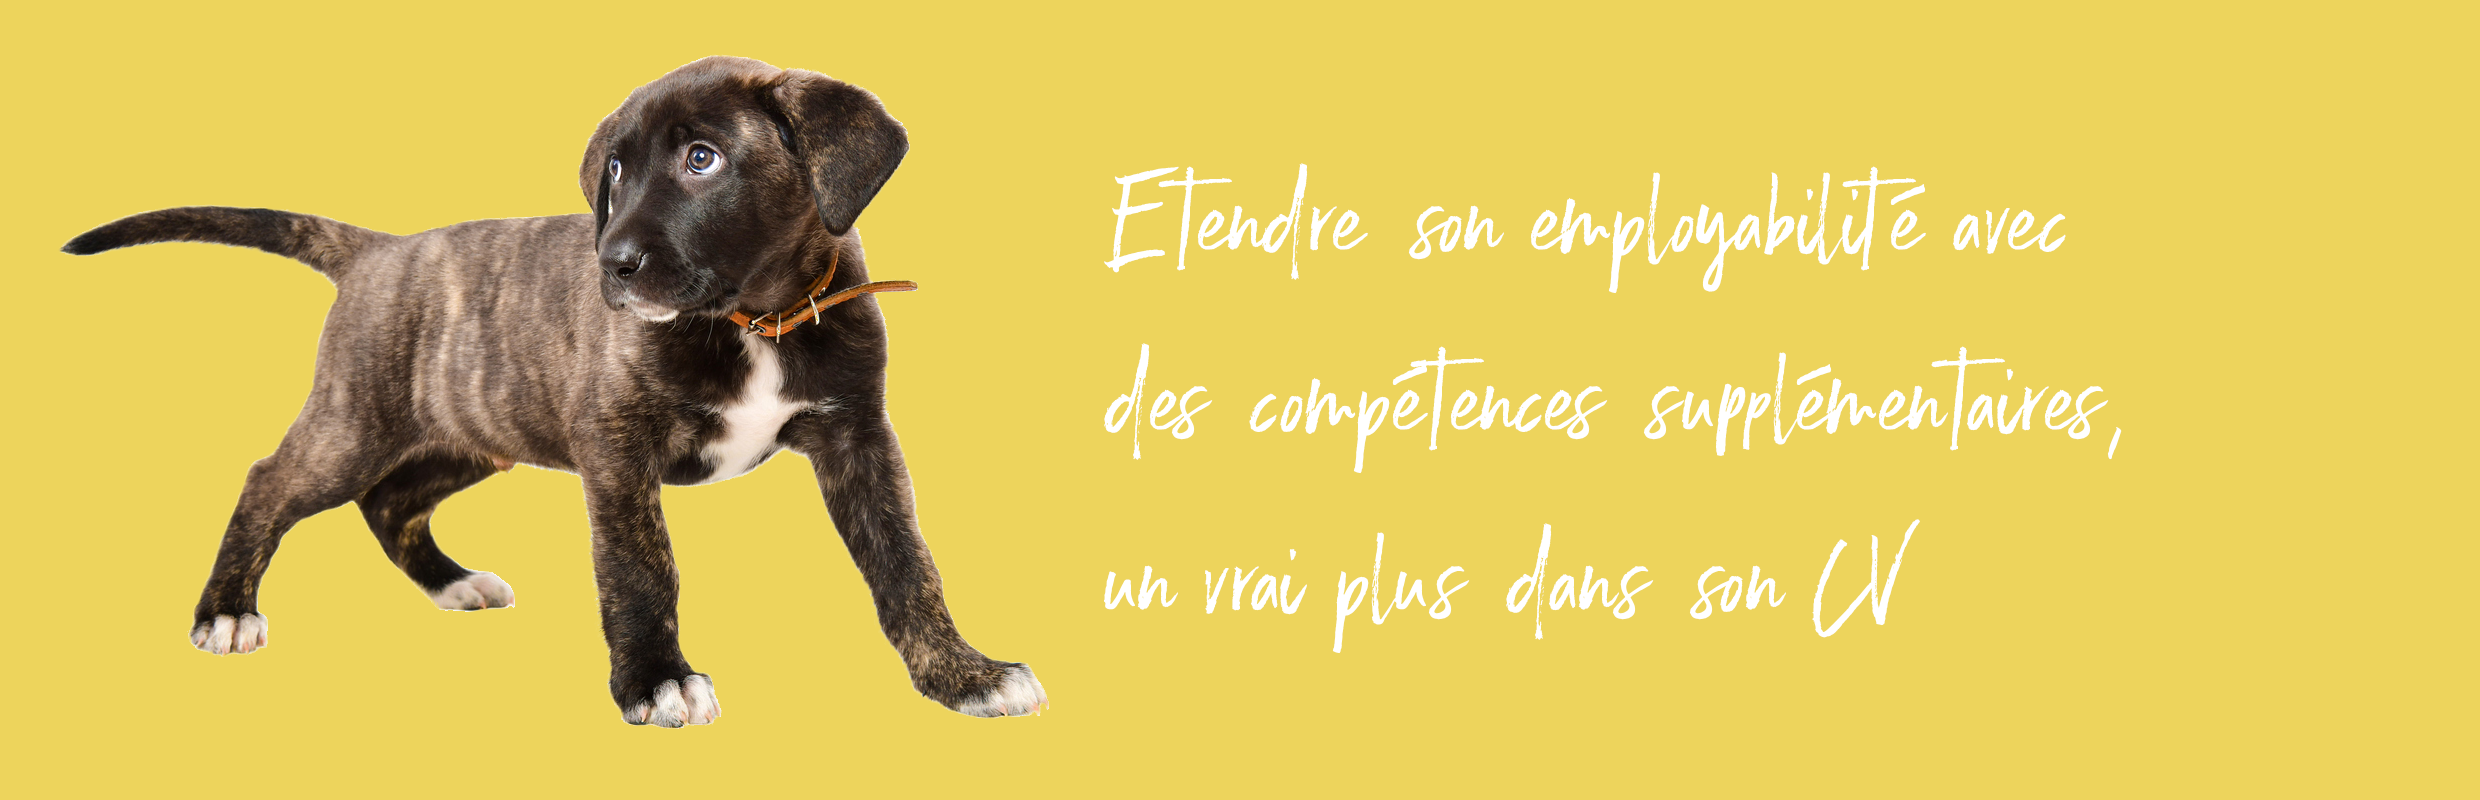 CPES_Bandeau_Chien pipi (002)